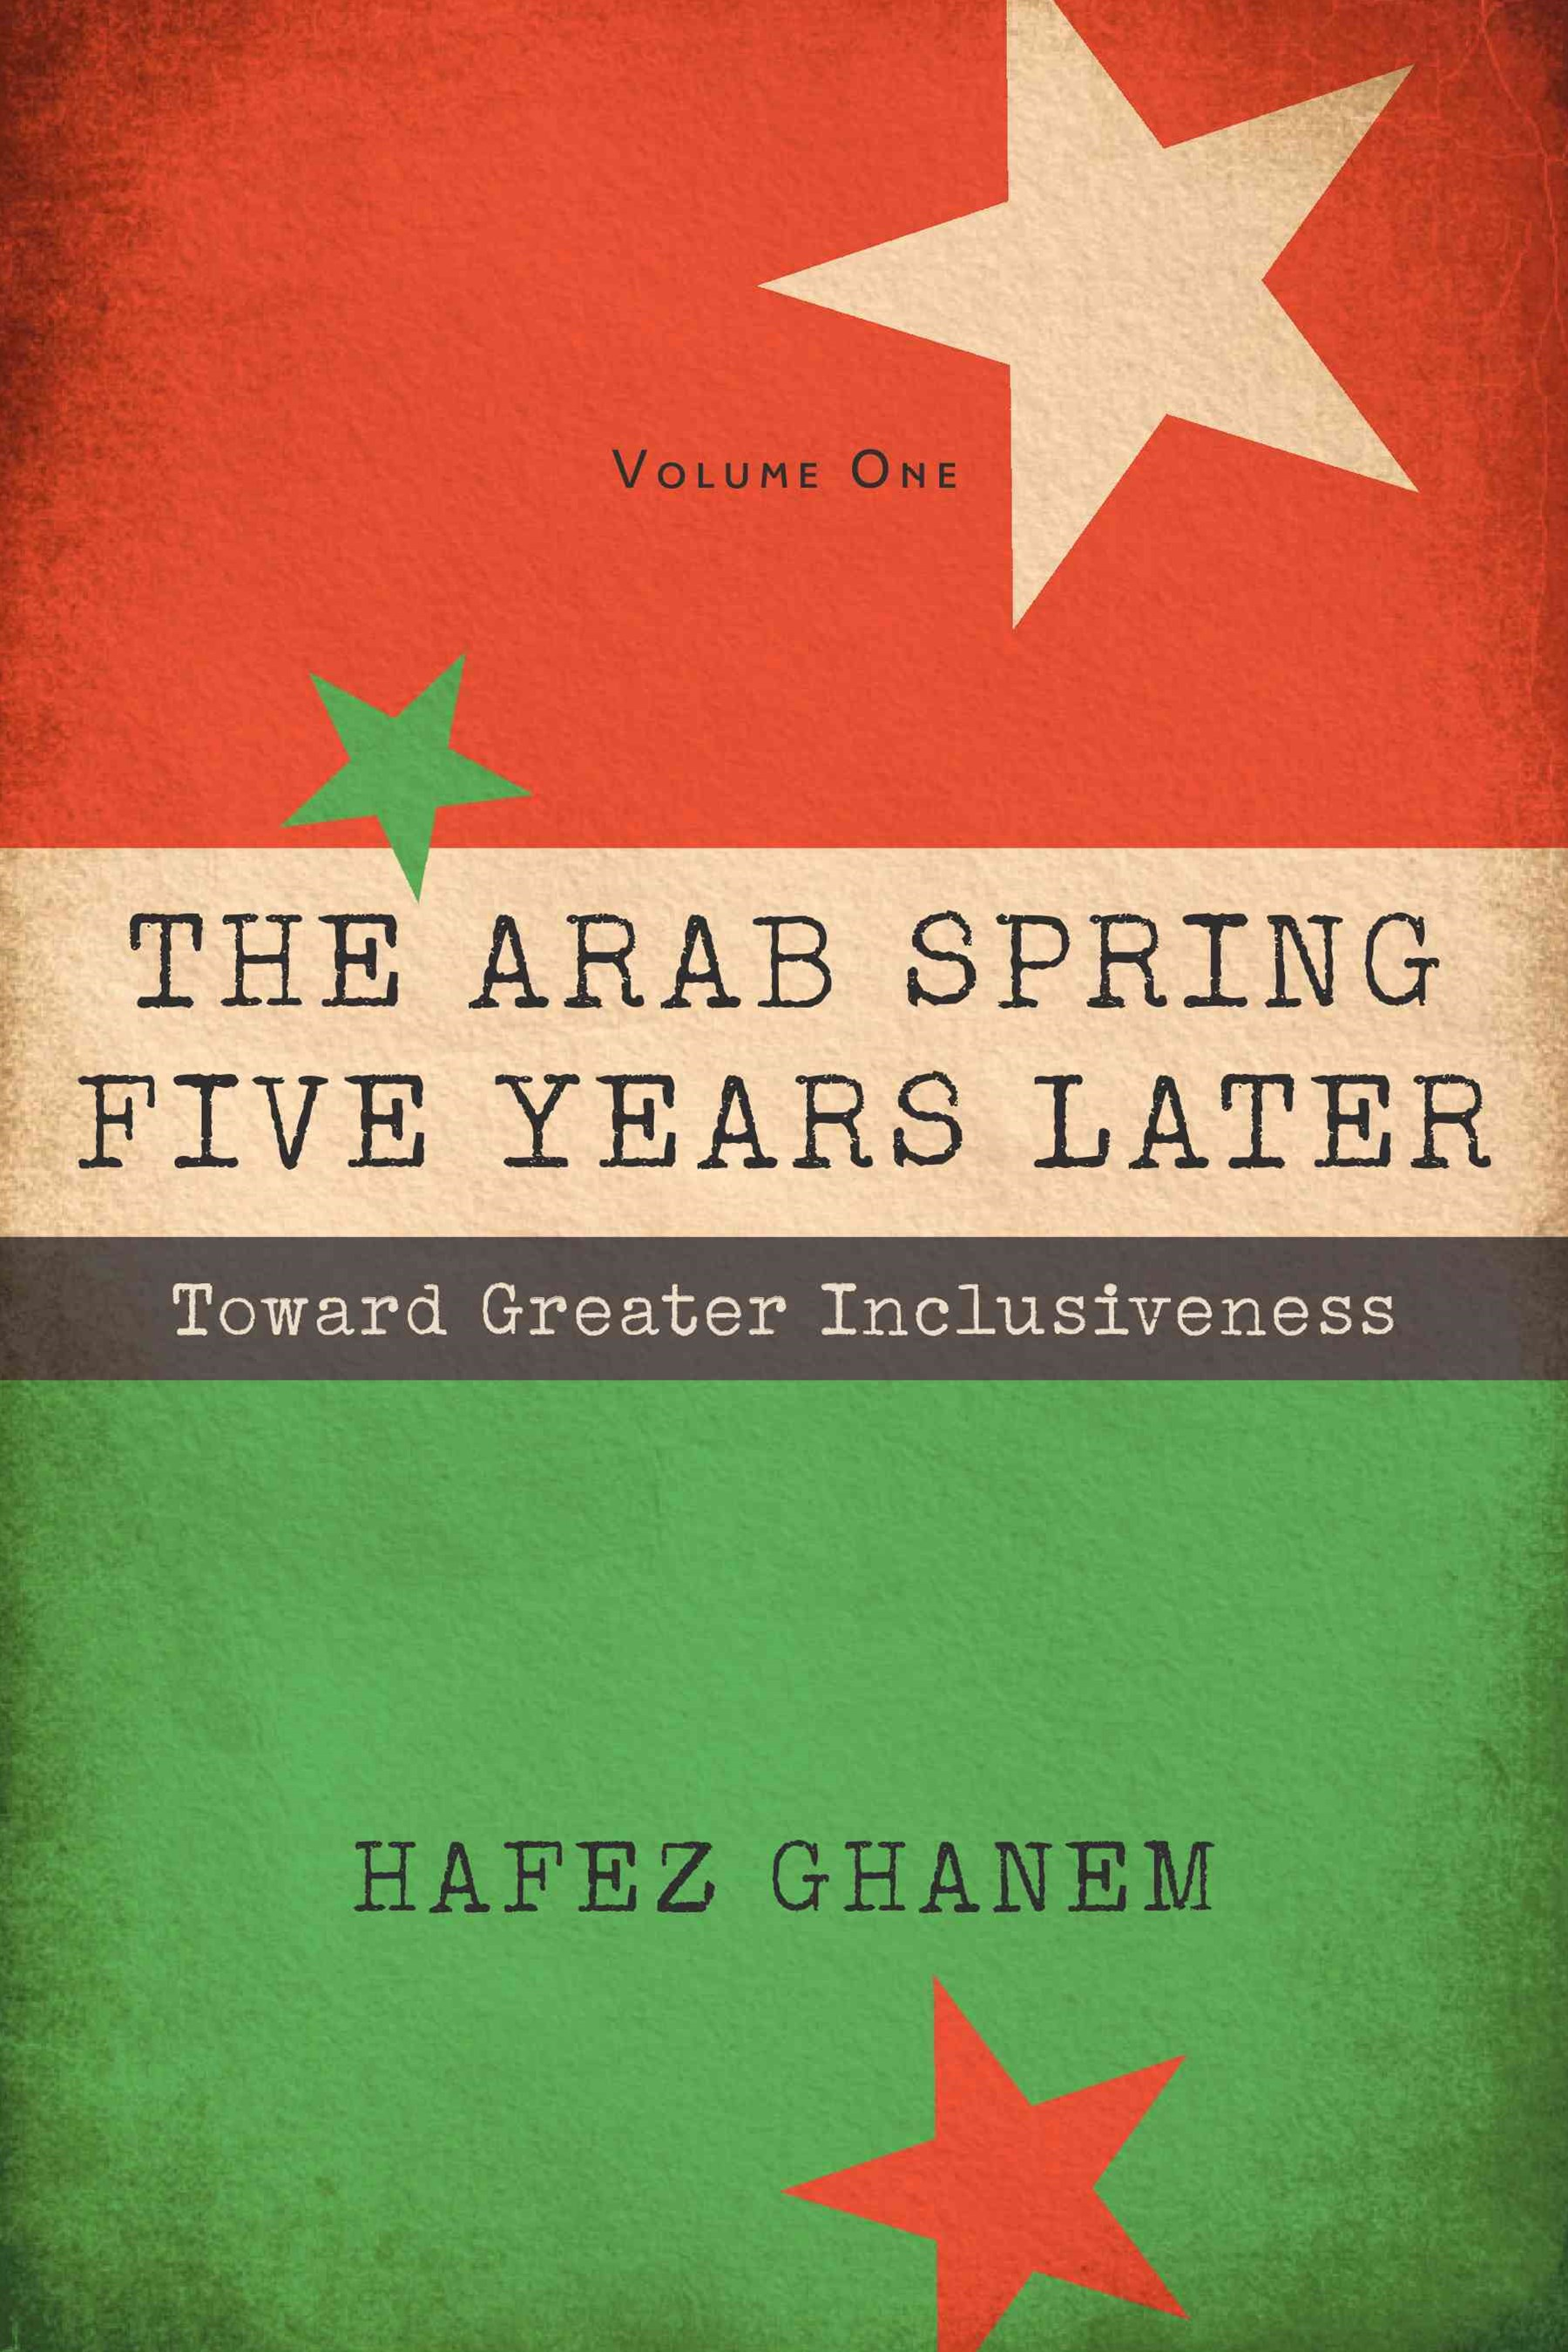 The Arab Spring Five Years Later, Volume 1